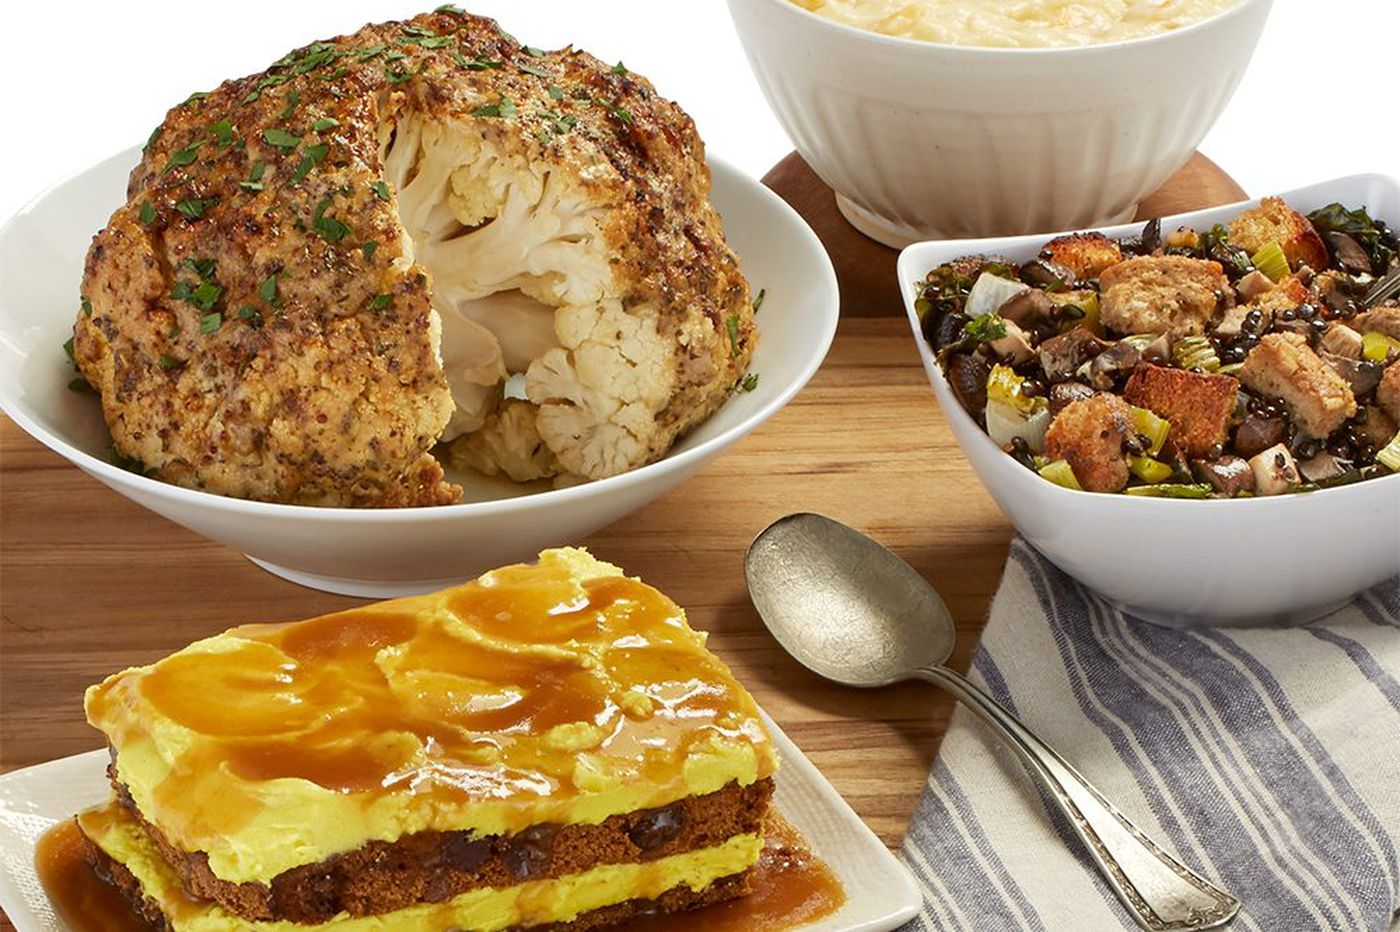 Vegan Thanksgiving dinners from Vedge at Whole Foods